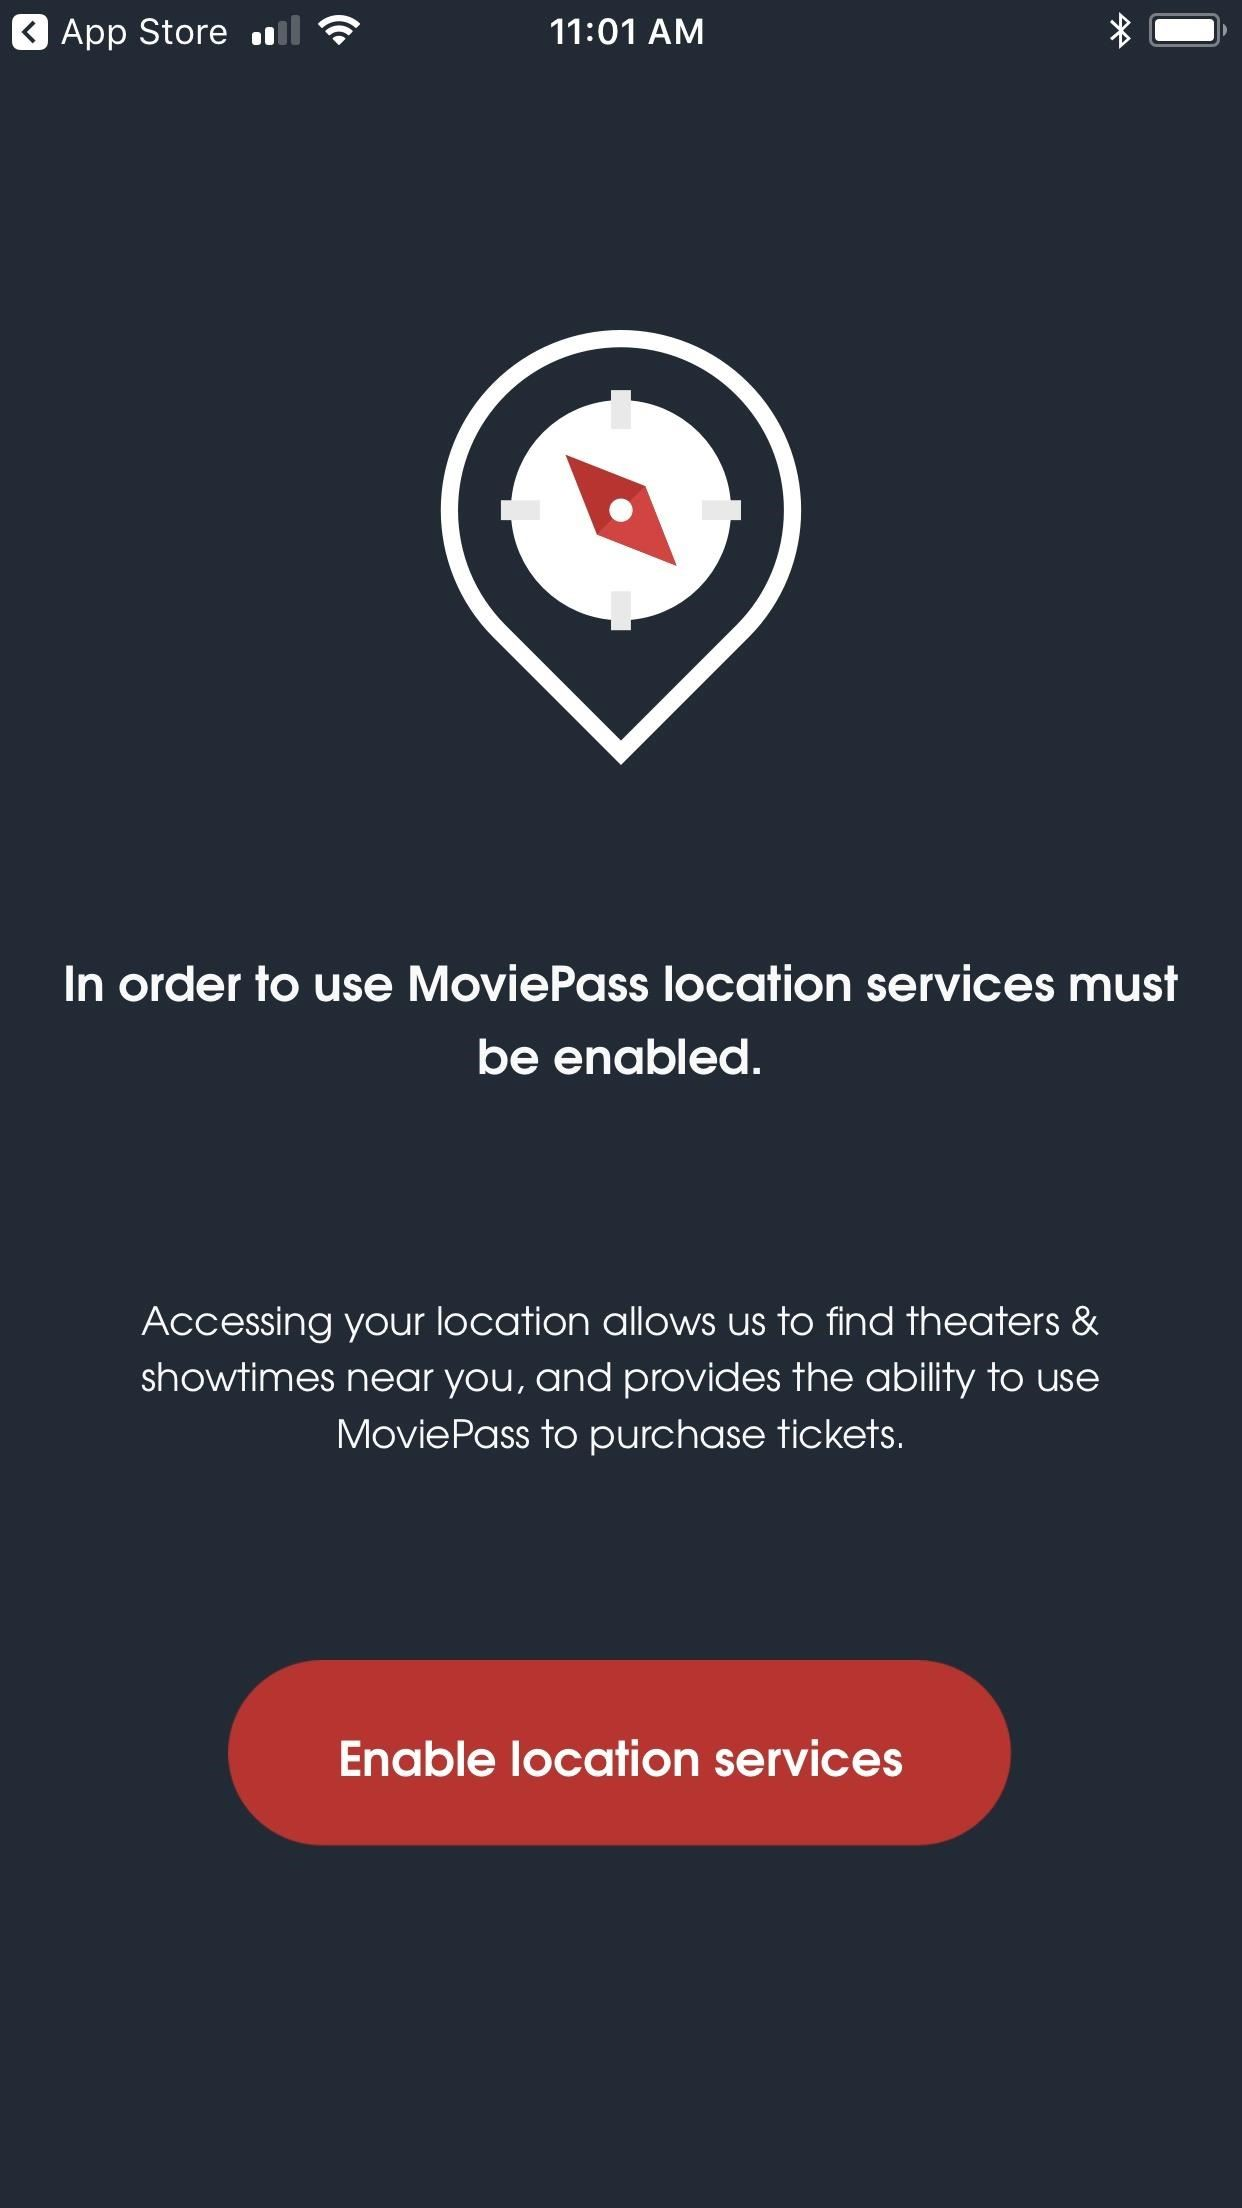 There's an Easy Way to Stop MoviePass from Tracking Your iPhone After Watching Films